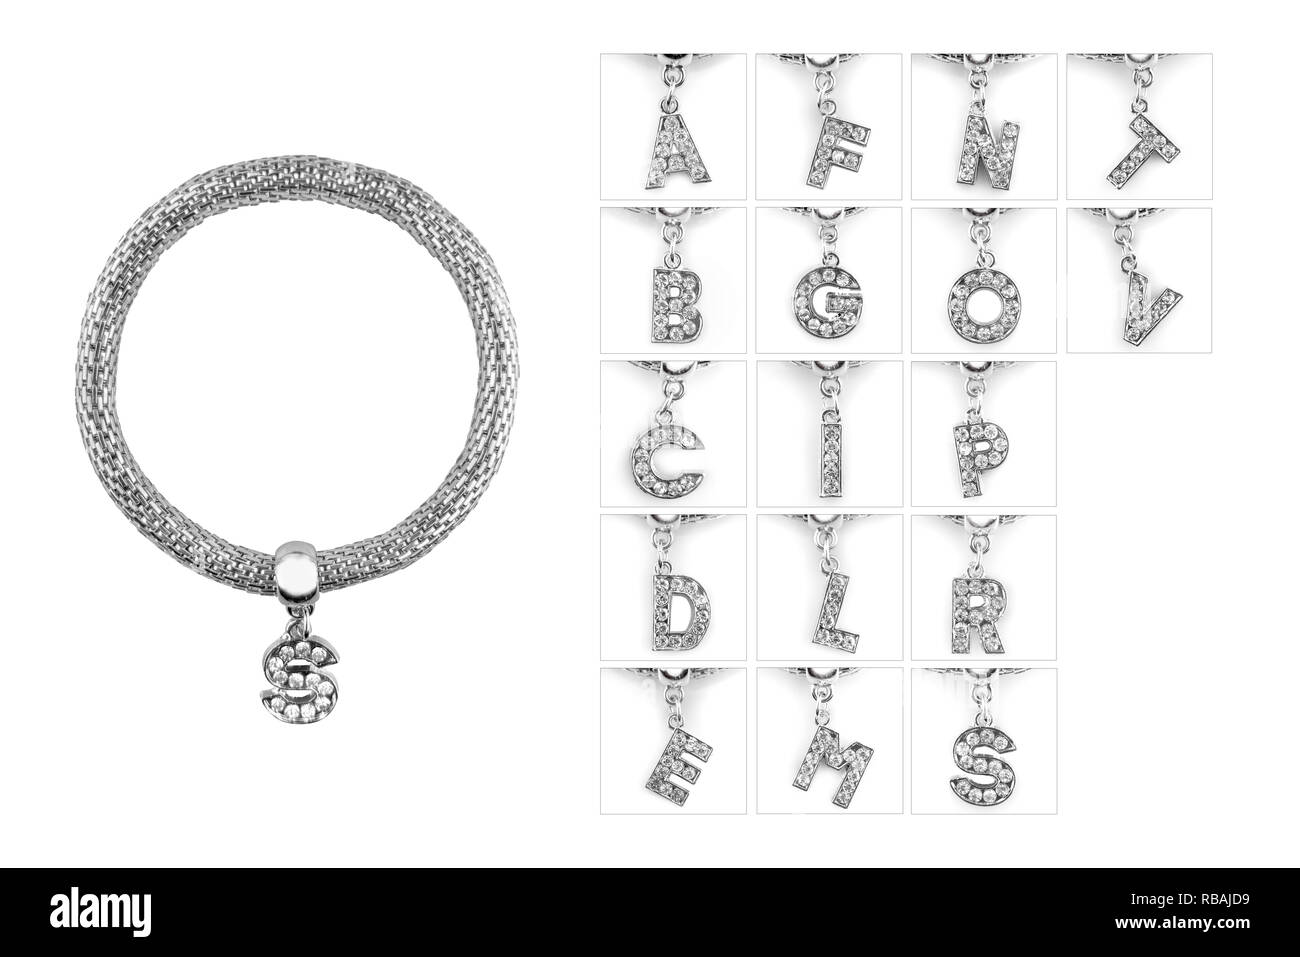 Silver bracelet with letter pendant with diamonds, isolated on white background, clipping path included. Full alphabet letters as pendants. - Stock Image